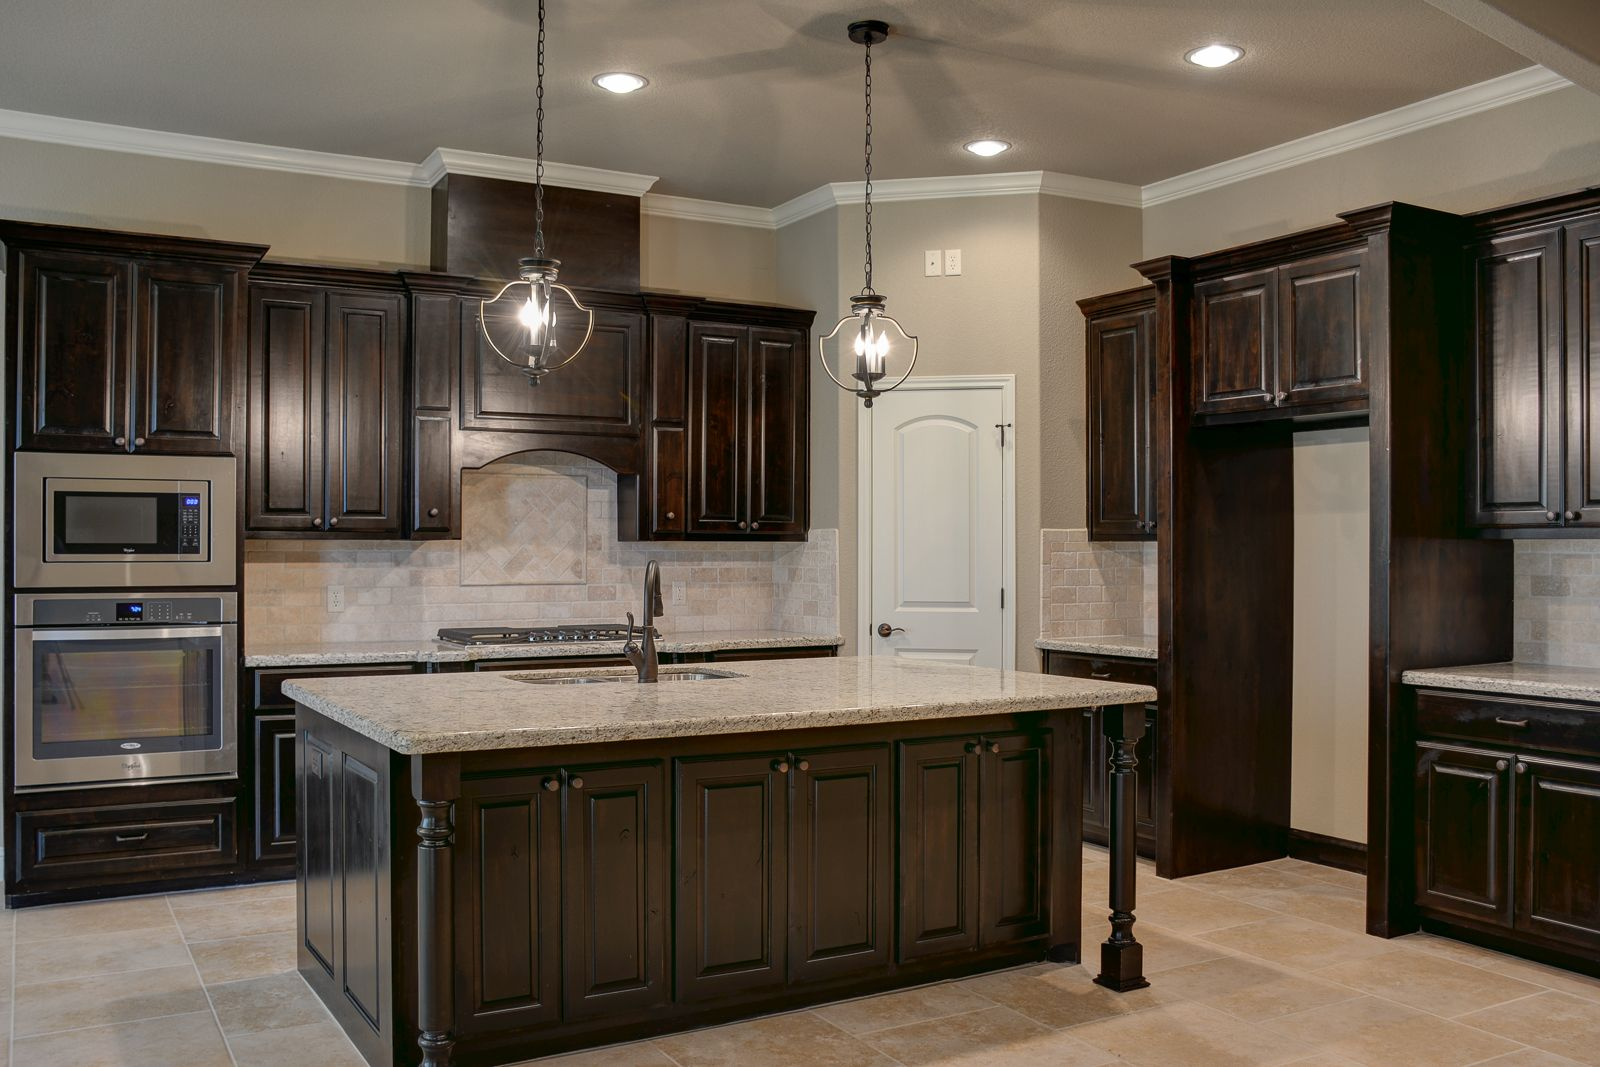 Black Walnut Stained Knotty Alder Cabinets Dark Kitchen Cabinets Walnut Kitchen Cabinets Brown Kitchen Cabinets